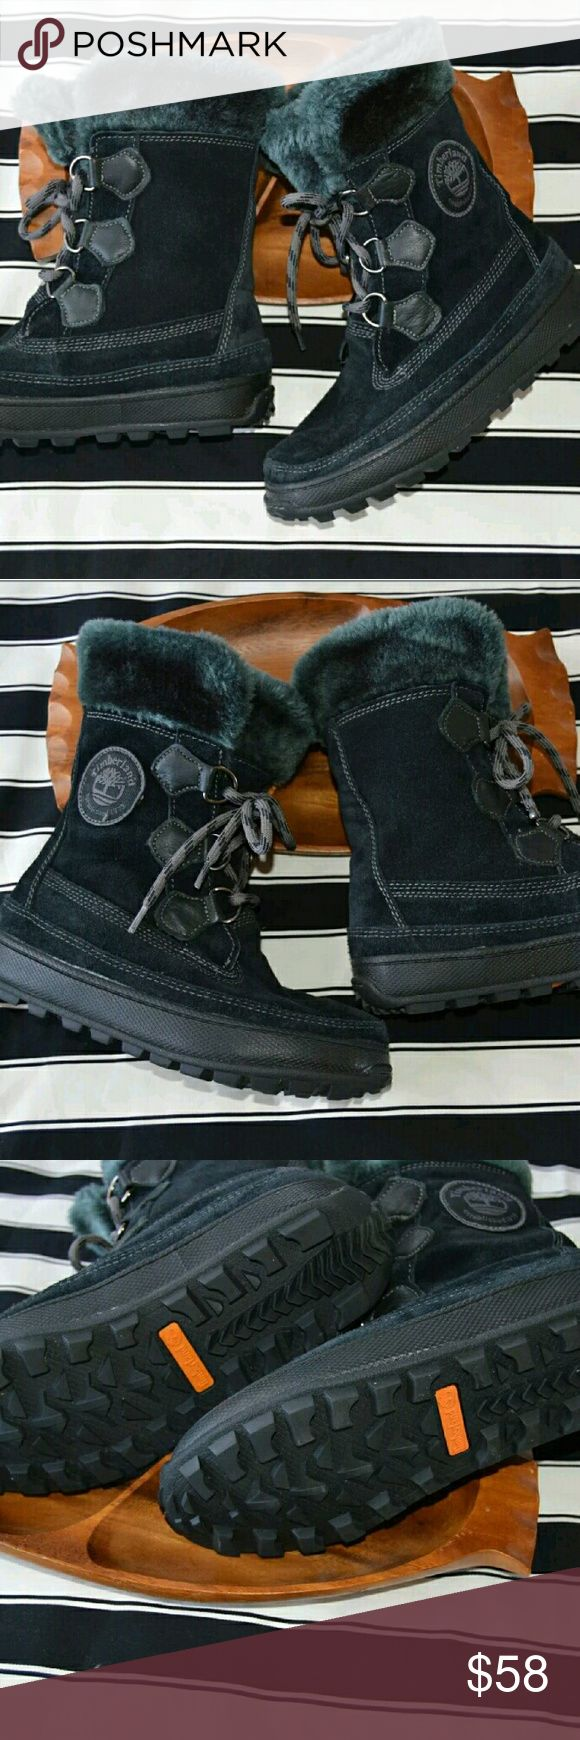 Timberland mukluks black suede fur boots 5.5M These boots lace up and have fur on top to keep you extra warm. Hardly worn. Timberland Shoes Lace Up Boots